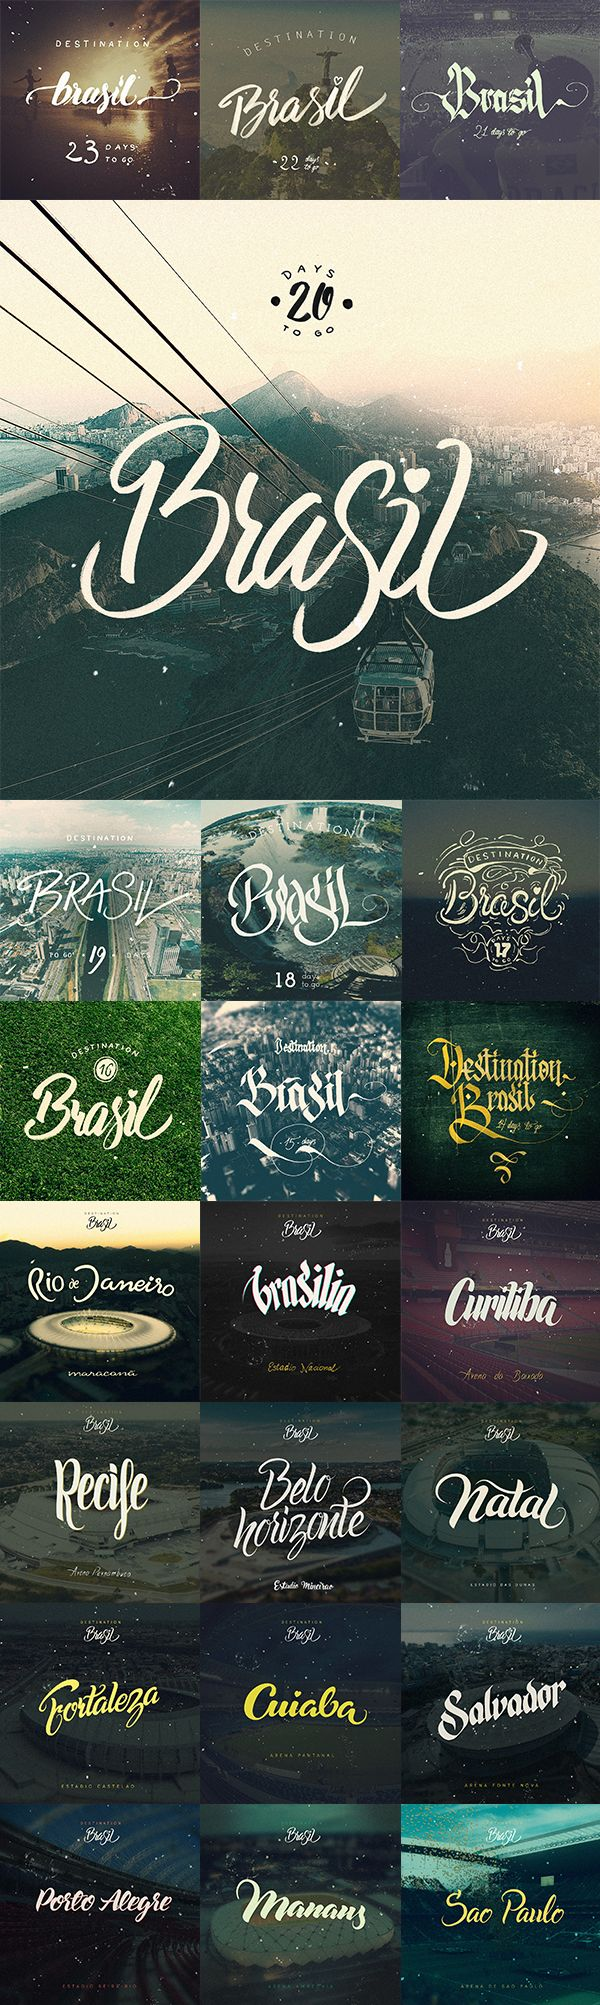 Destination Brasil by Arkadiusz Radek, via Behance